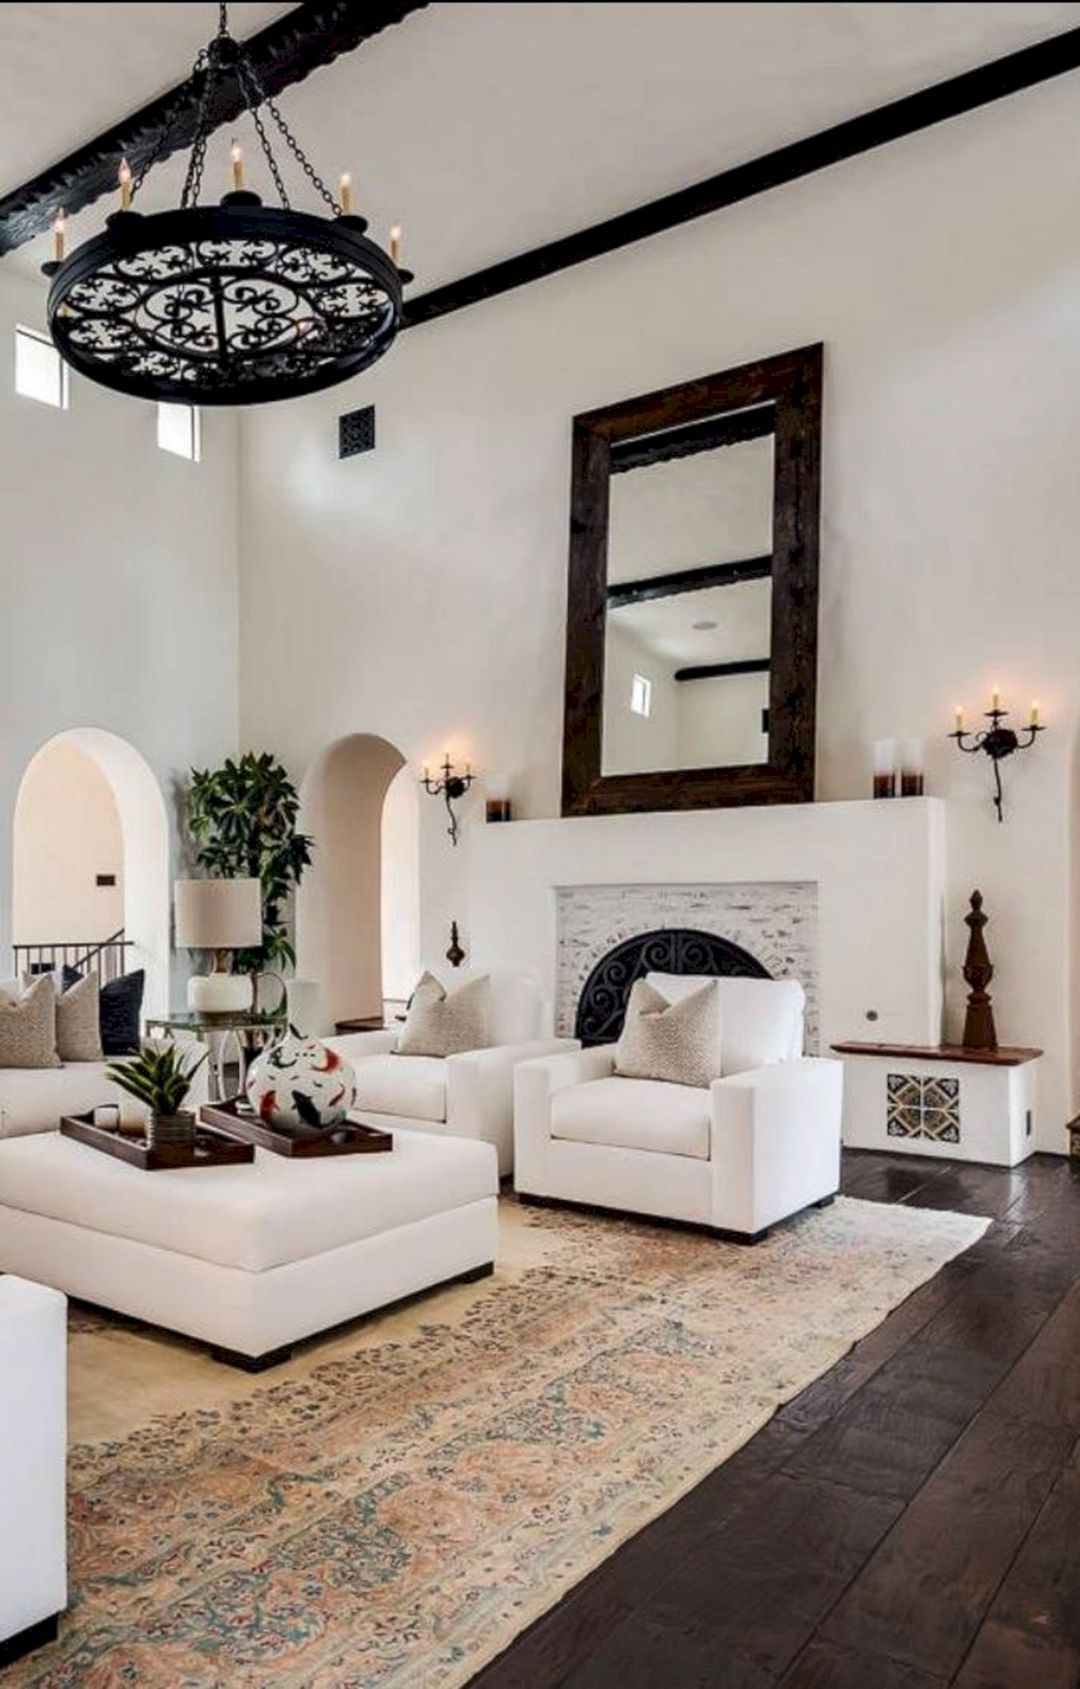 New Project Traditional Design Meets Spanish Revival In Druid Hills Chandelier In Living Room Spanish Style Home House Interior